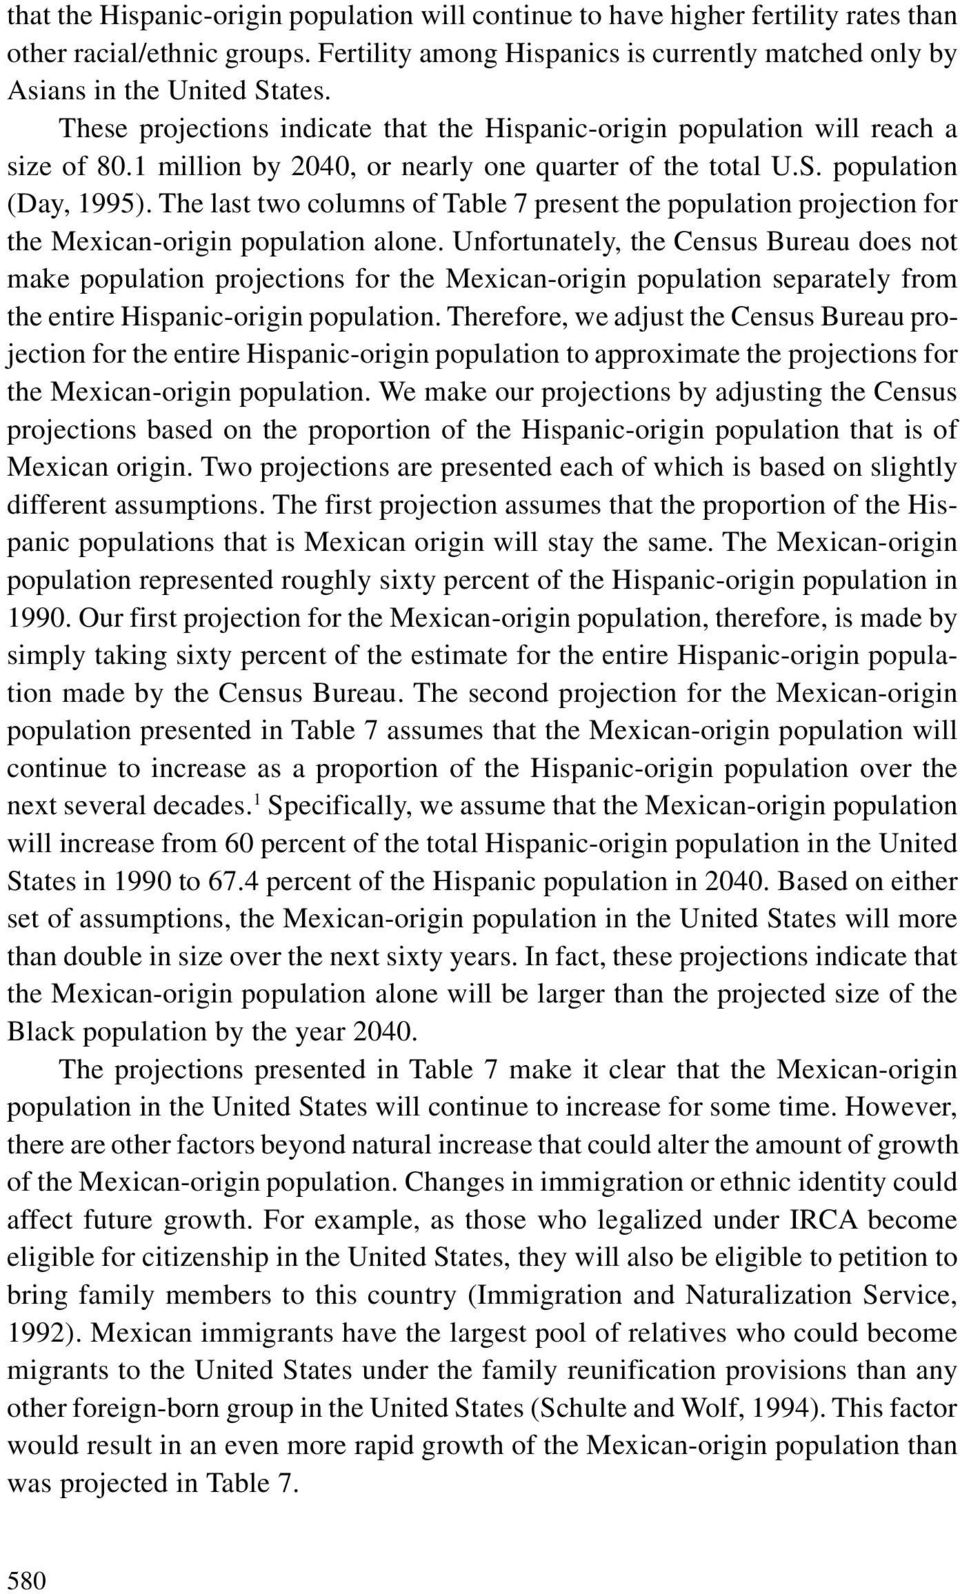 The last two columns of Table 7 present the population projection for the Mexican-origin population alone.